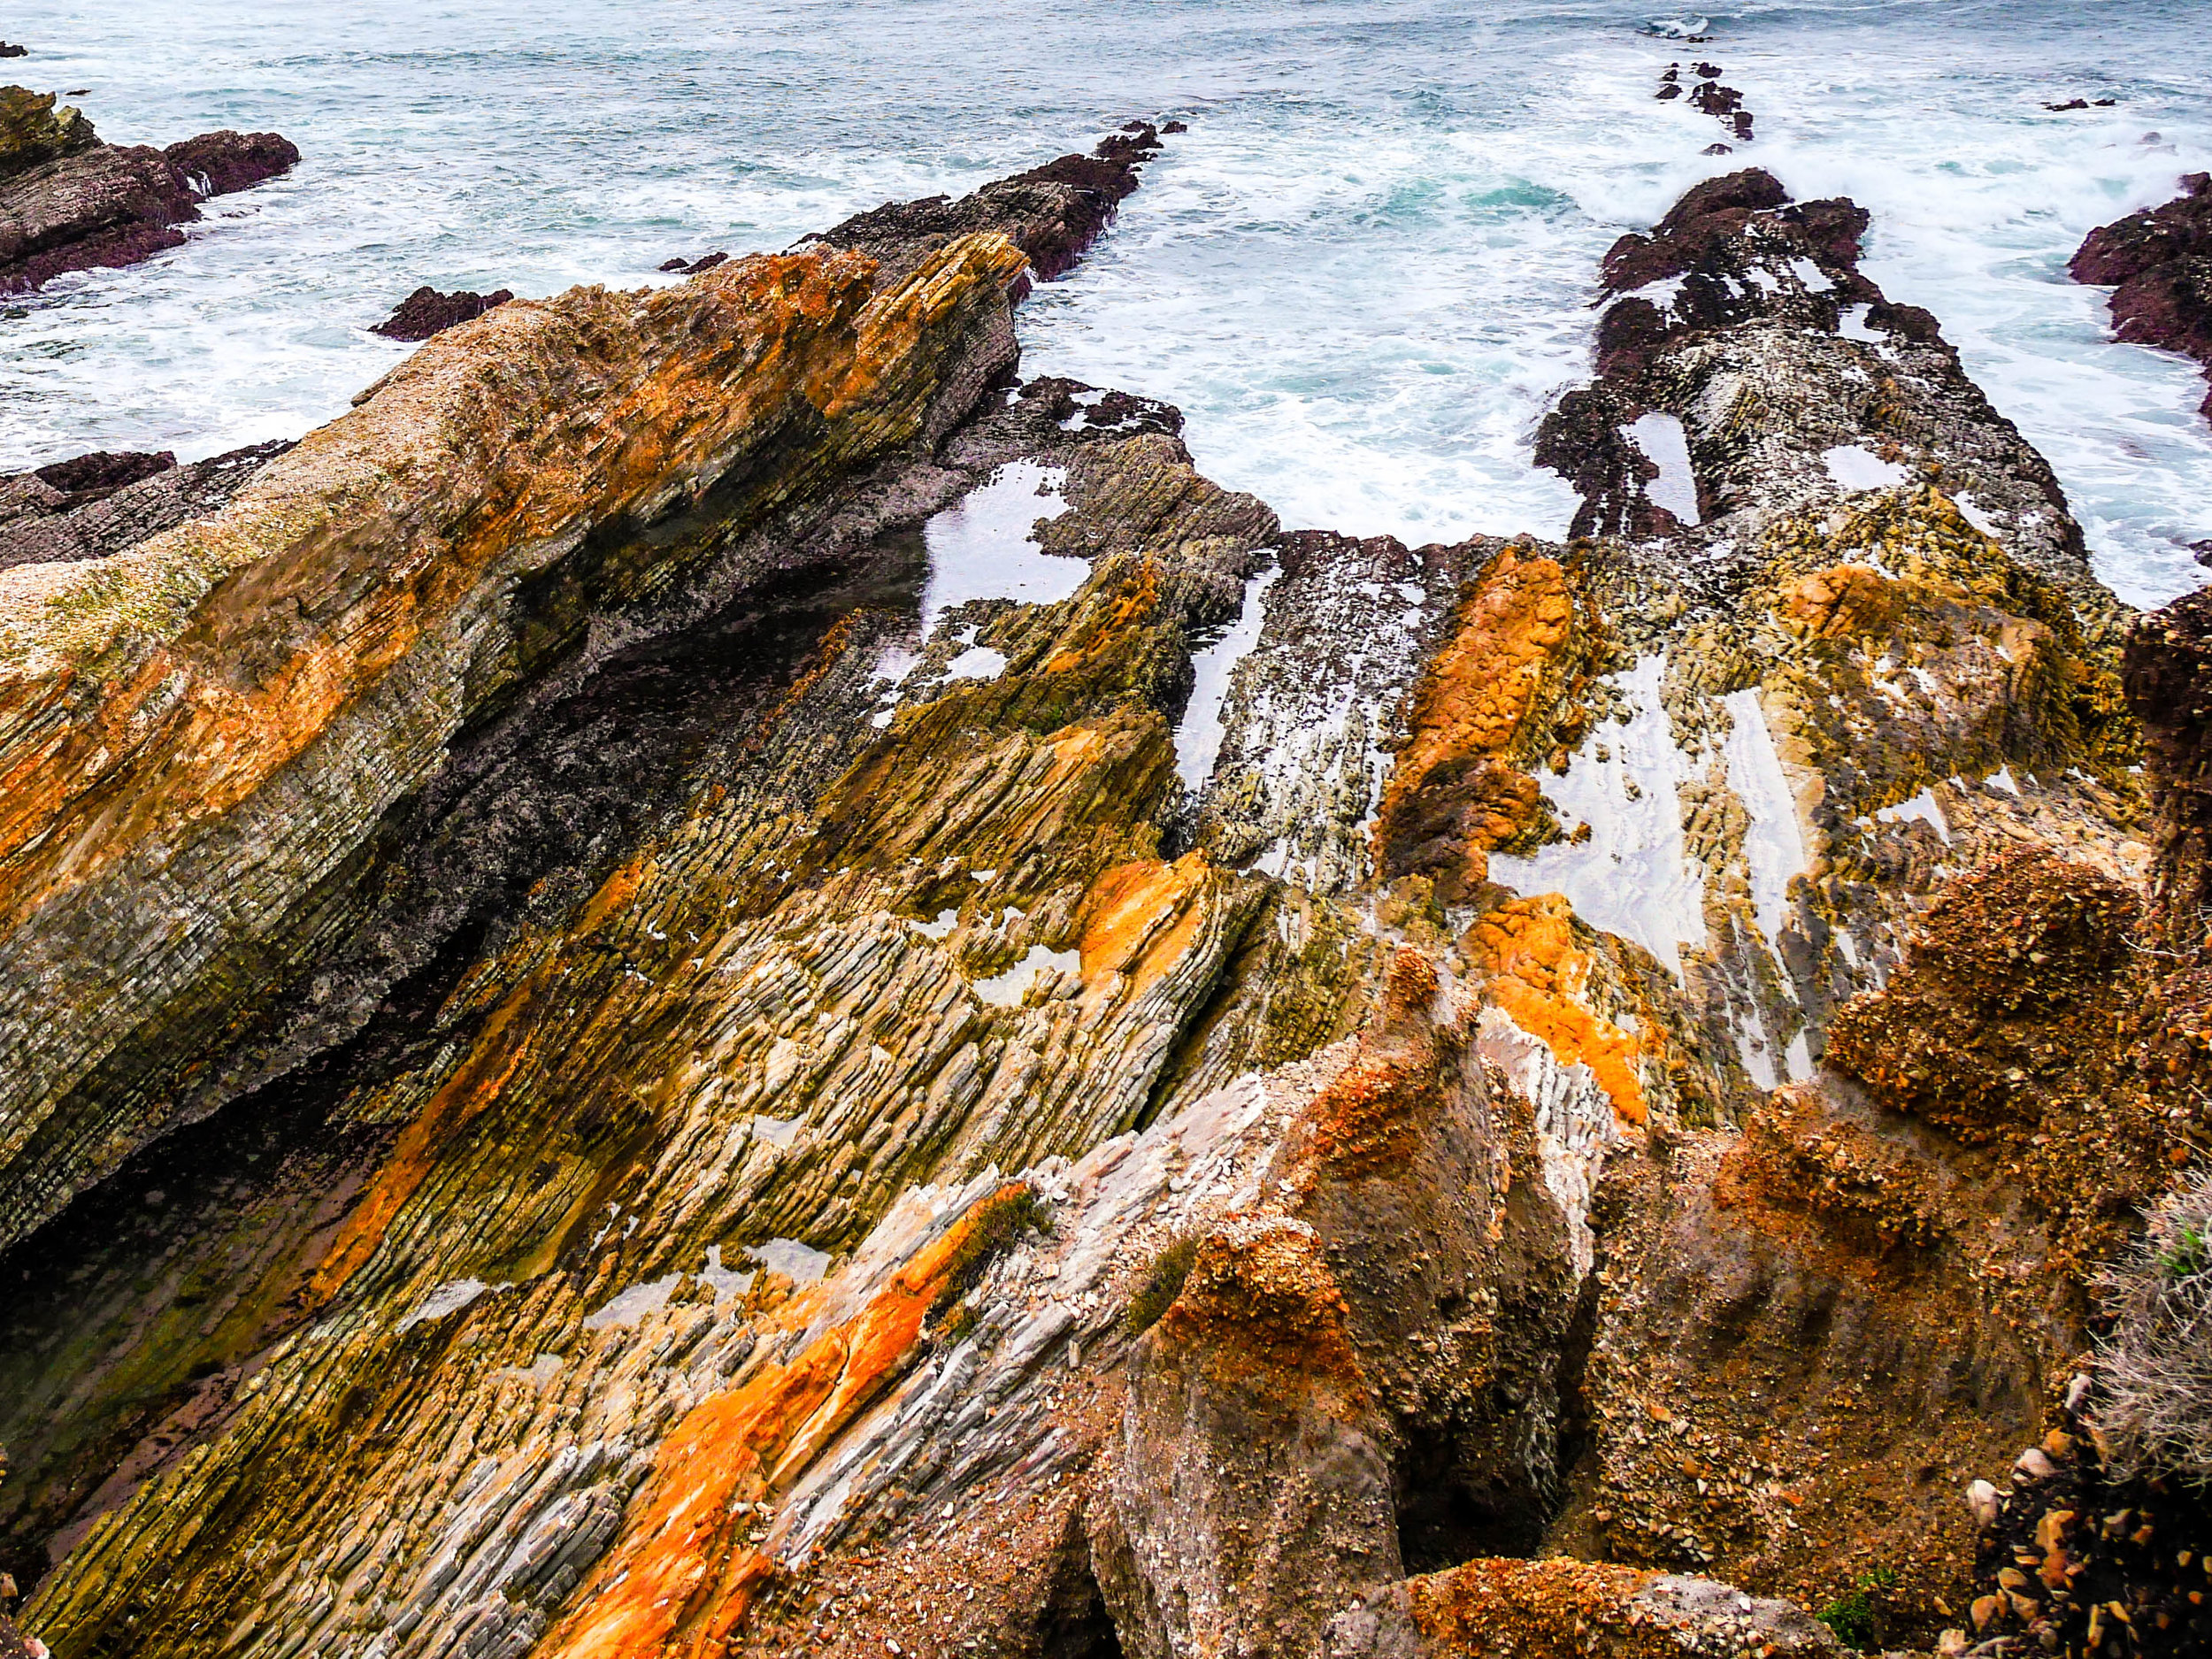 The coastline on the Bluffs Trail at Montana de Oro State Park.